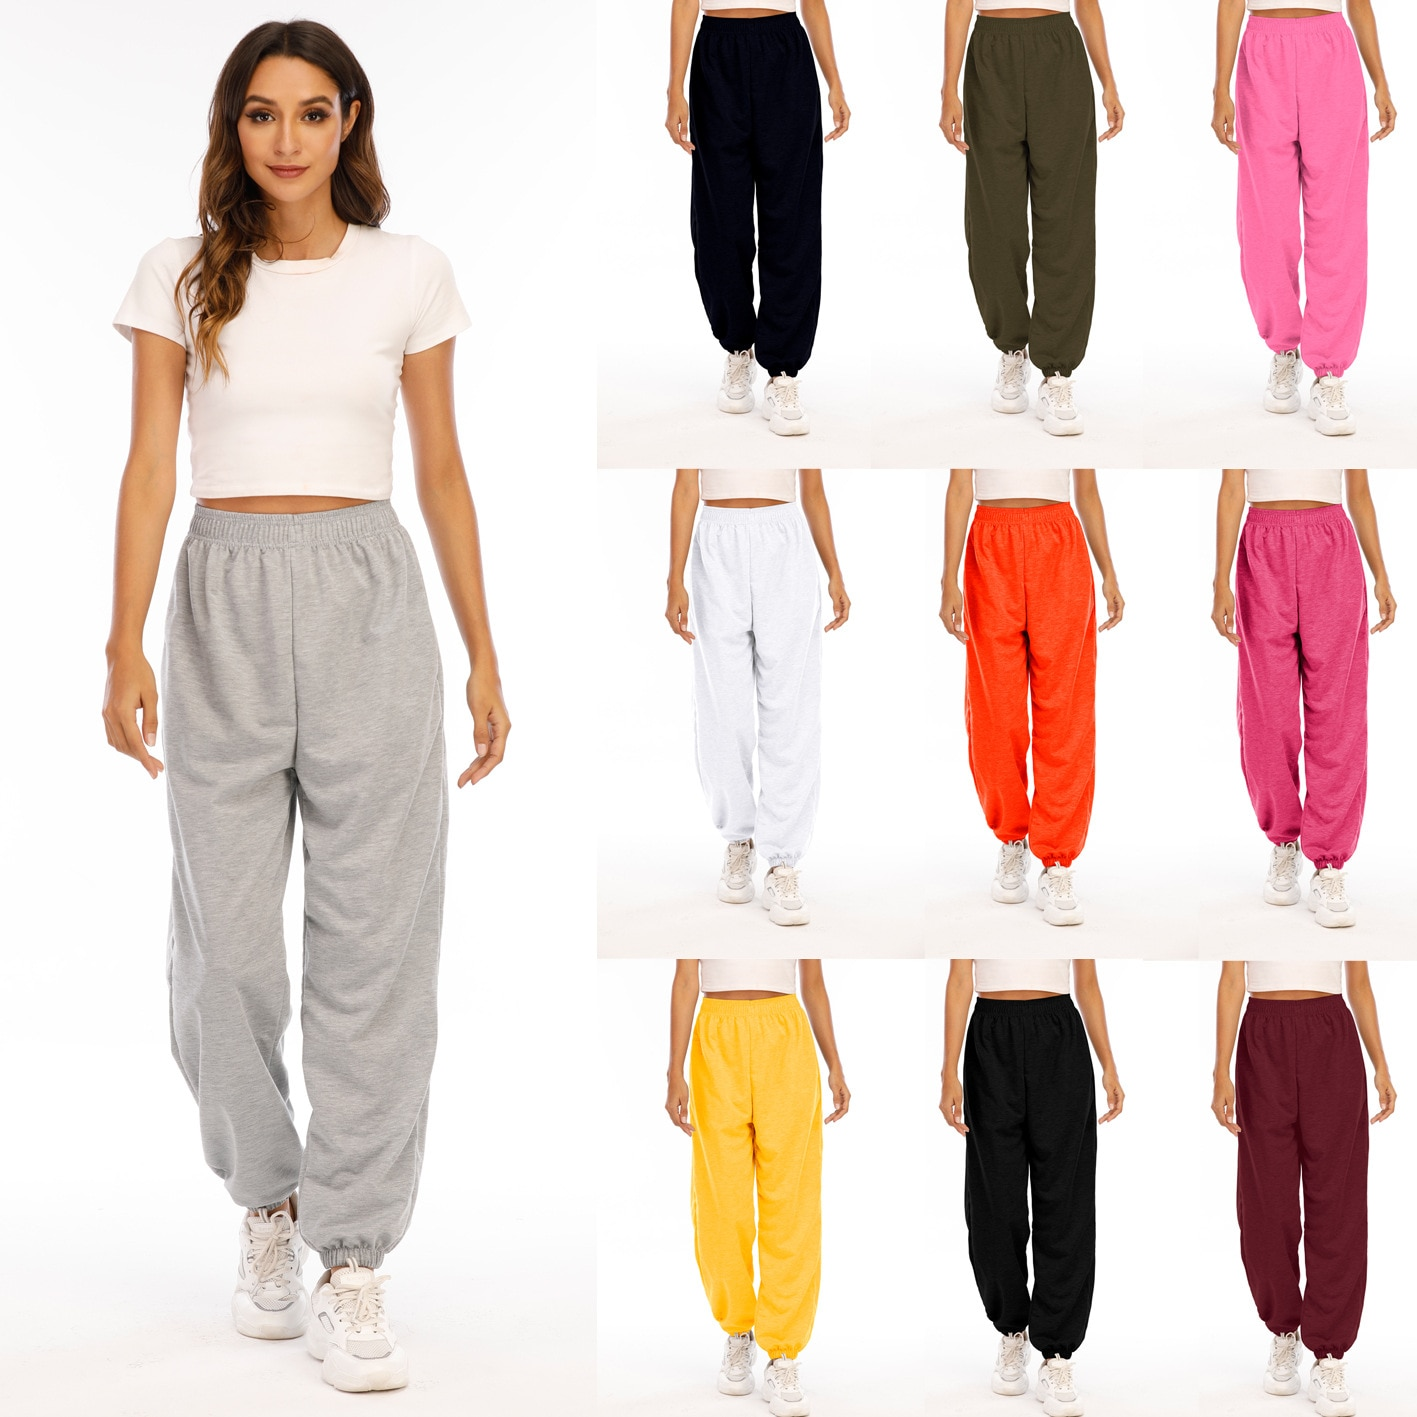 Women's Sports Pants Running Sport Joggers Summer Gym Fitness Sweatpants with Two Side Pockets Exercise Workout pants yoga pants